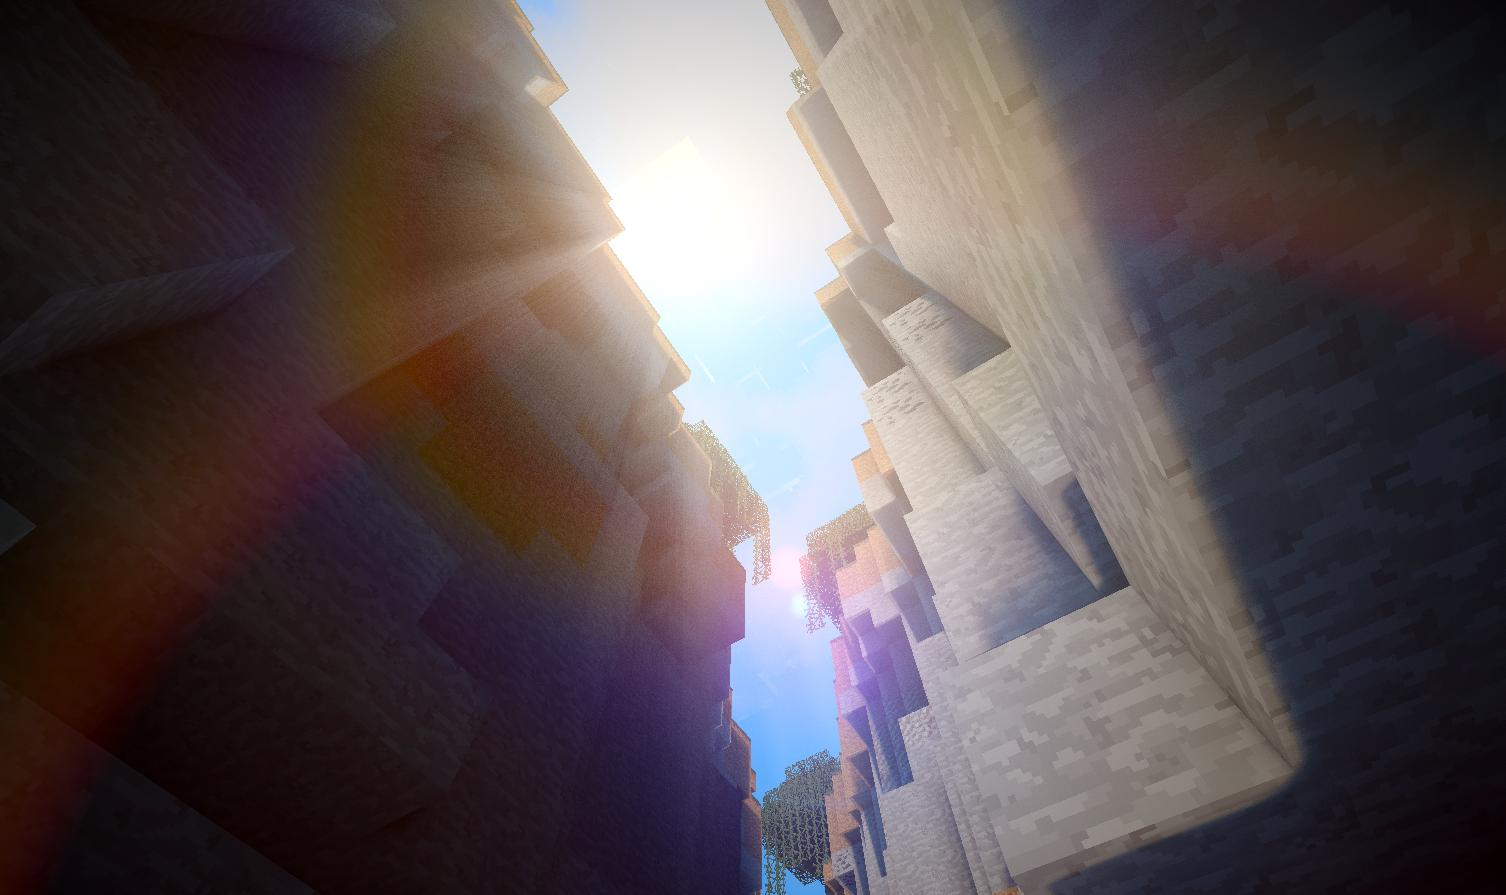 http://cdn.file-minecraft.com/Mods/Sildurs-Shaders-Mod-2.jpg